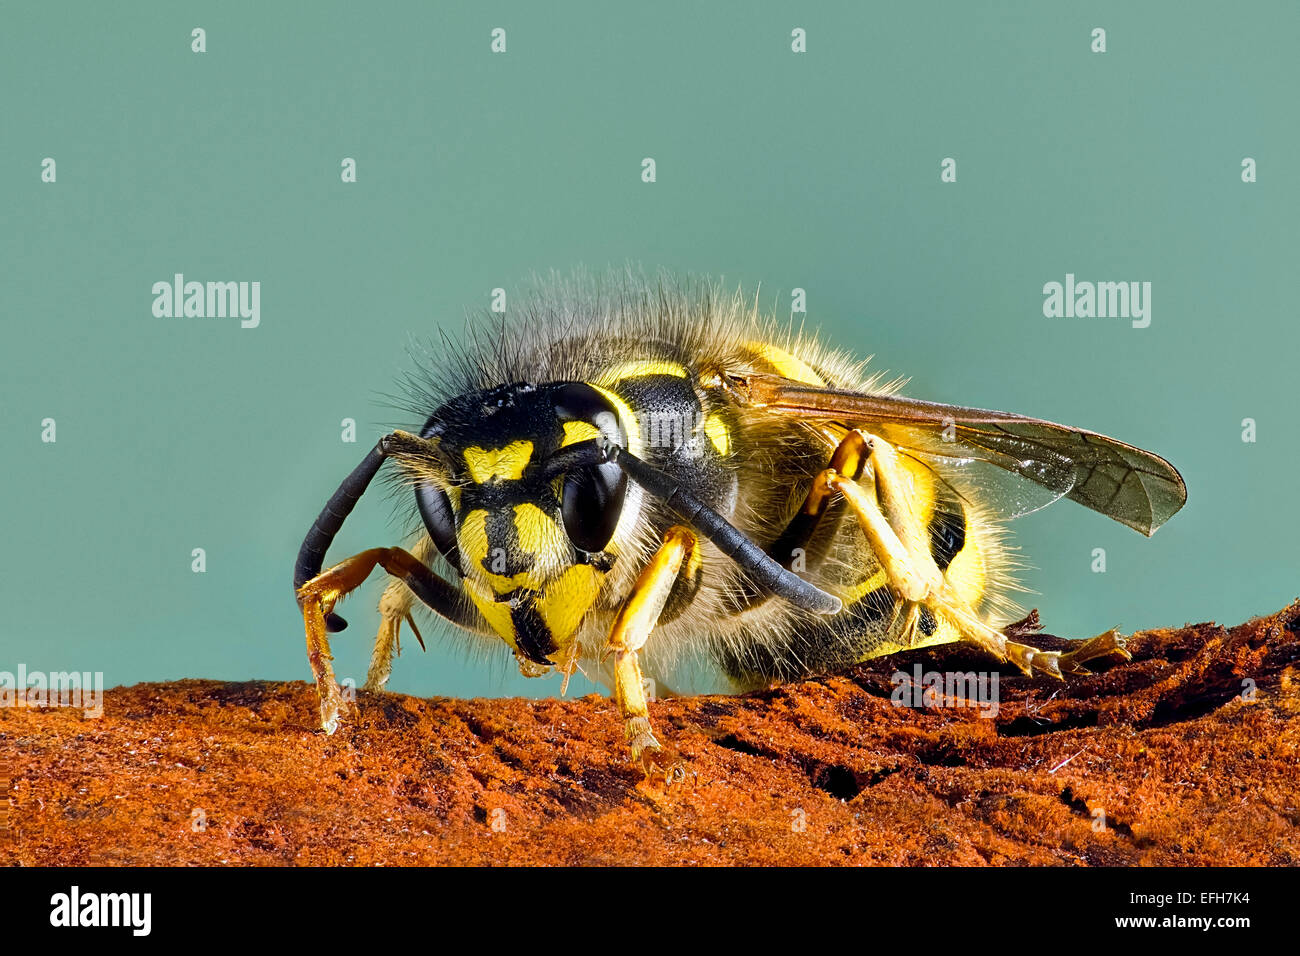 close-up-of-common-wasp-vespula-vulgaris